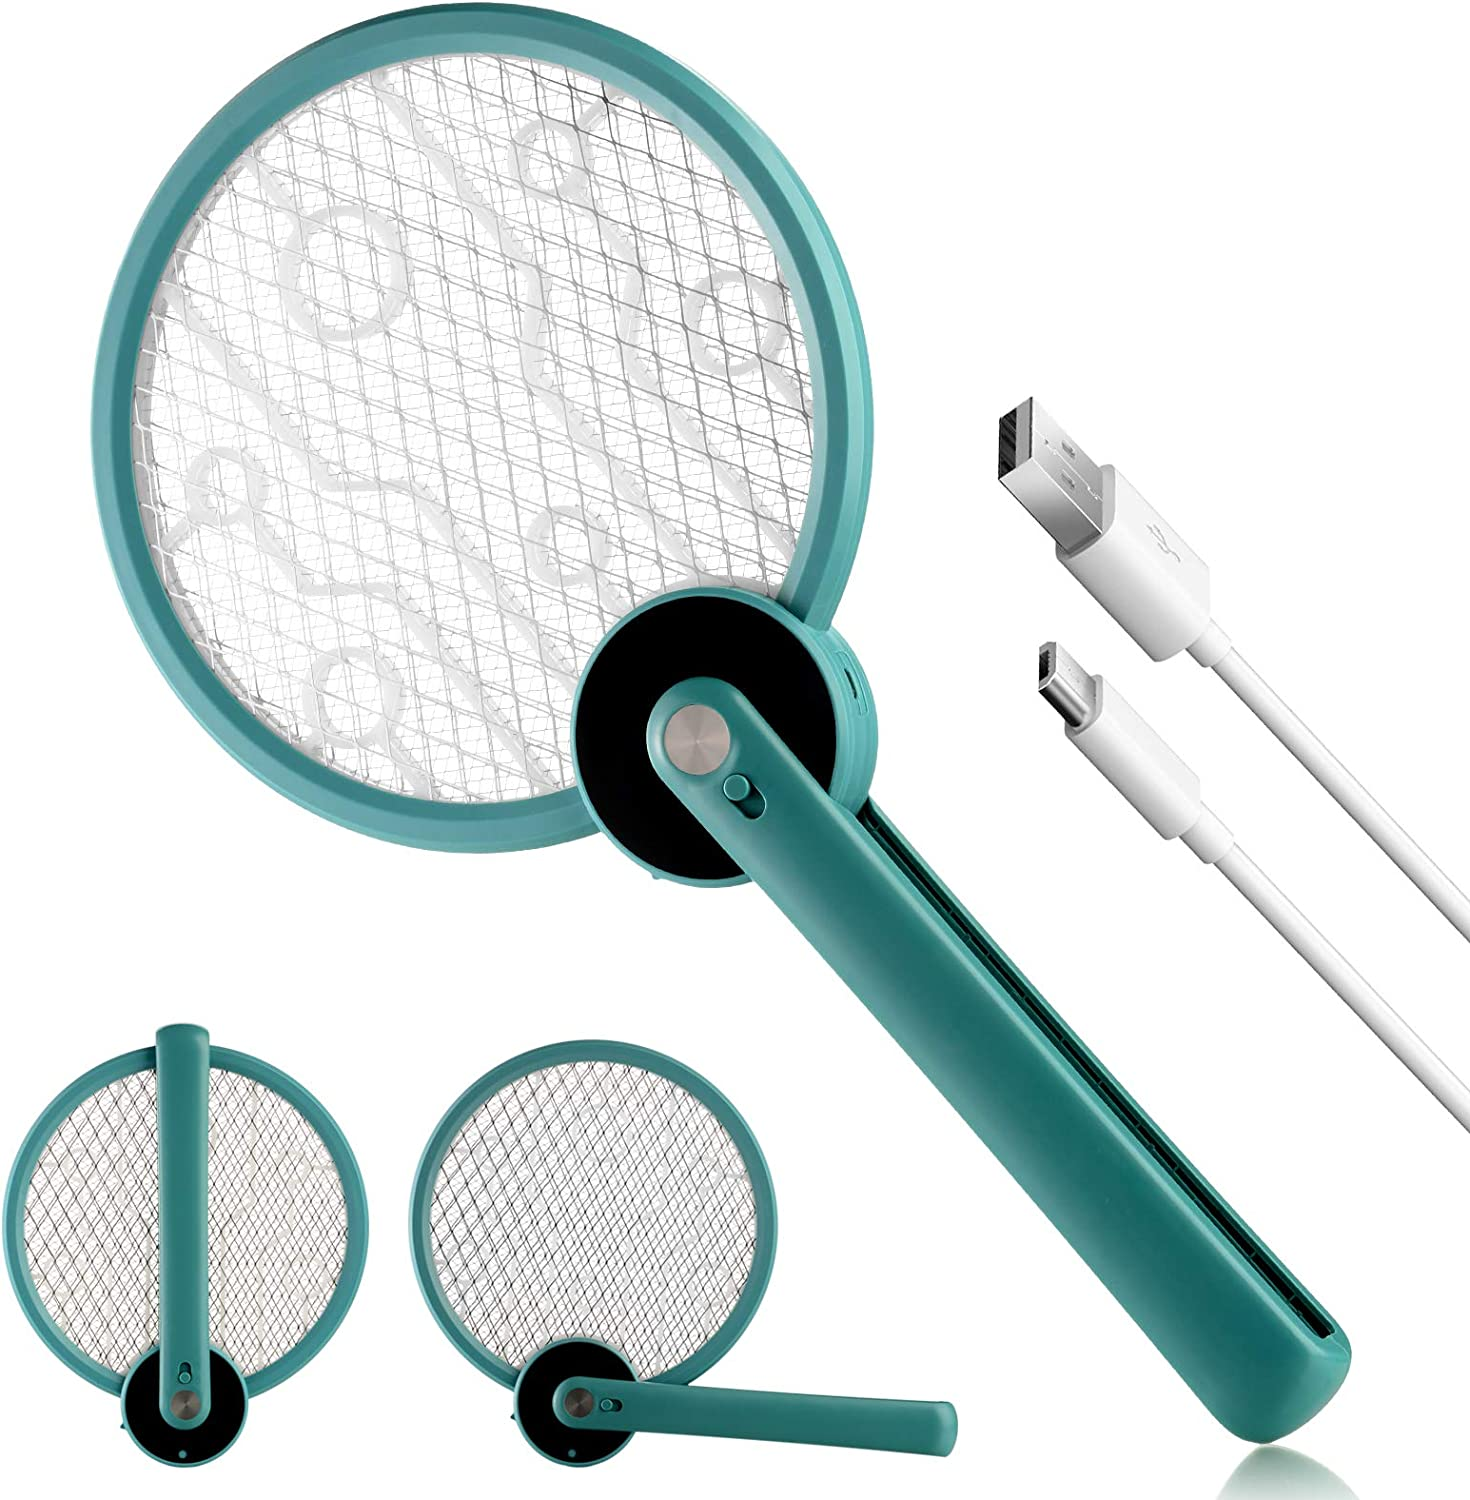 Bug Zapper, 2 in 1 Foldable Electric Fly Swatter & Bug Zapper Racket, Fly Killer & Mosquito Killer for Travel, Camping, Indoor and Outdoor Pest Control, USB Rechargeable, 3 Layers Safety Mesh